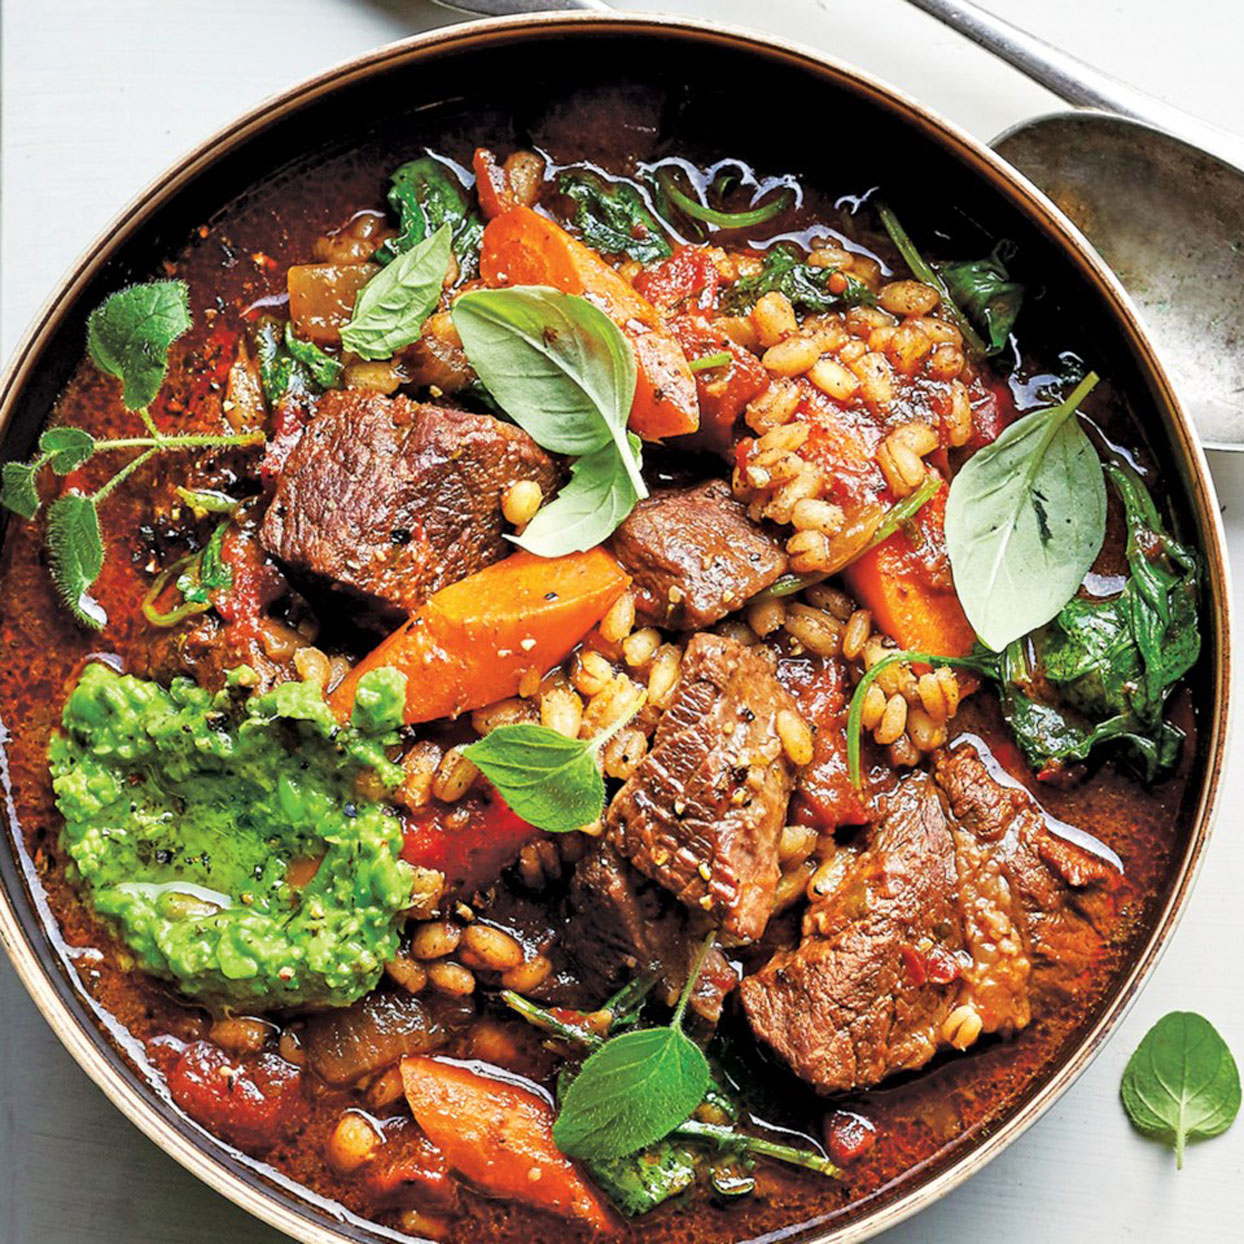 Slow-Cooker-Beef-and-Barley-Stew-With-Red-Wine-and-Pesto